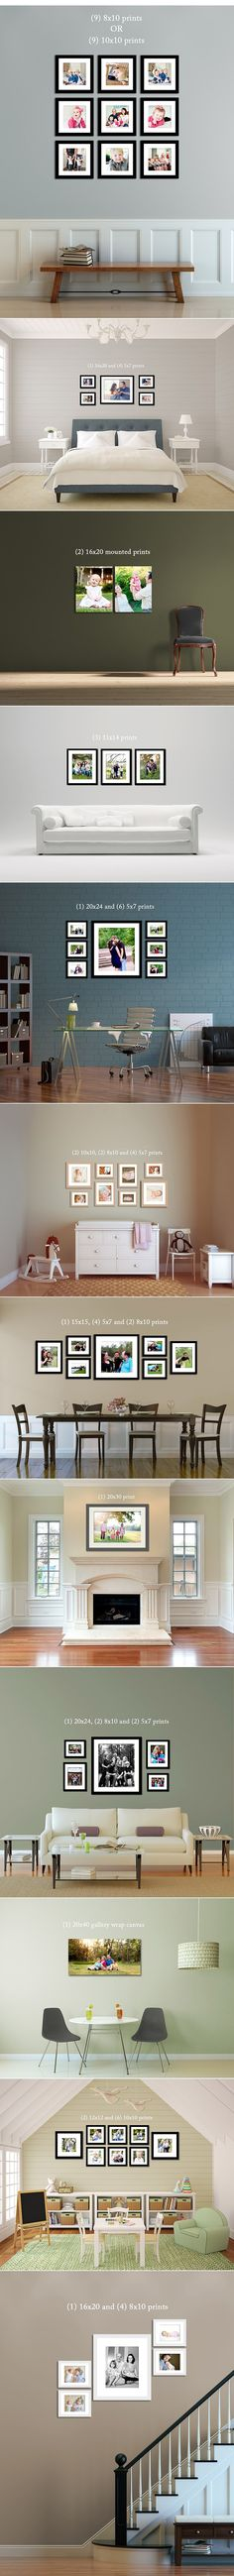 how to hang photos @ Home Design Ideas